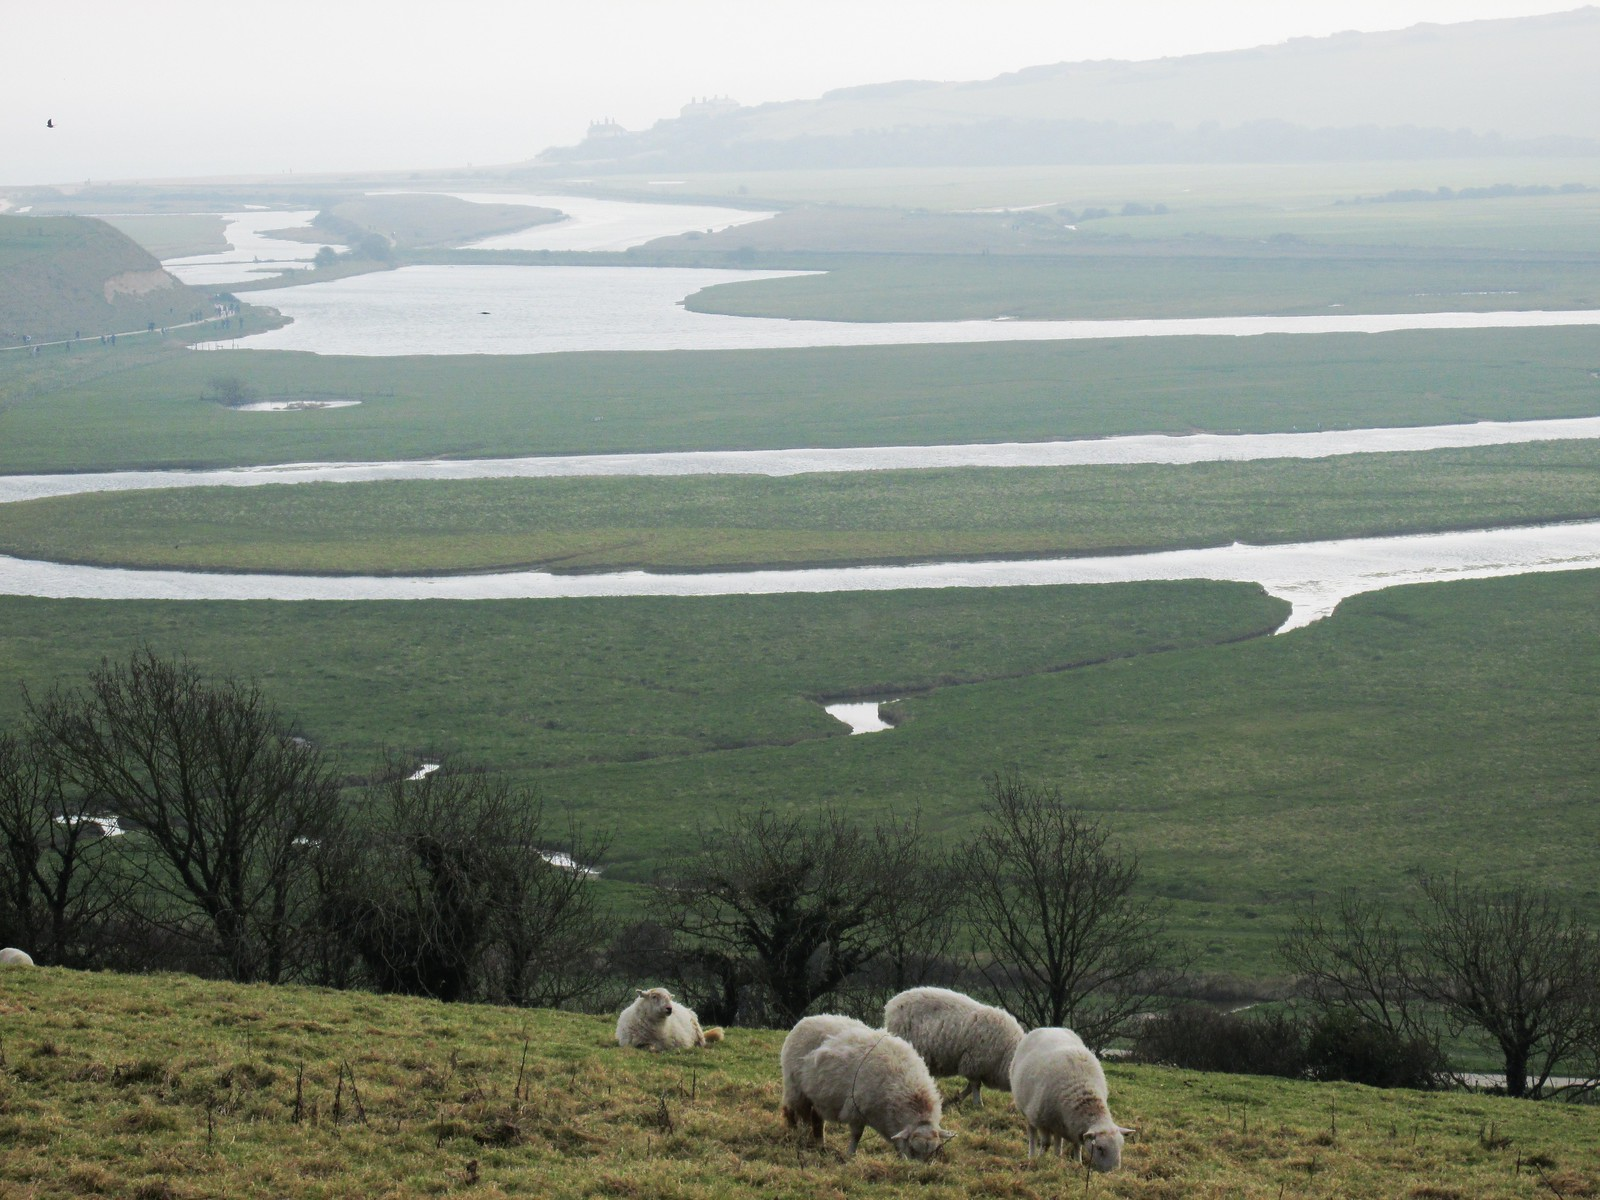 April 6, 2015: Glynde to Seaford Sheep & Cuckmere Haven